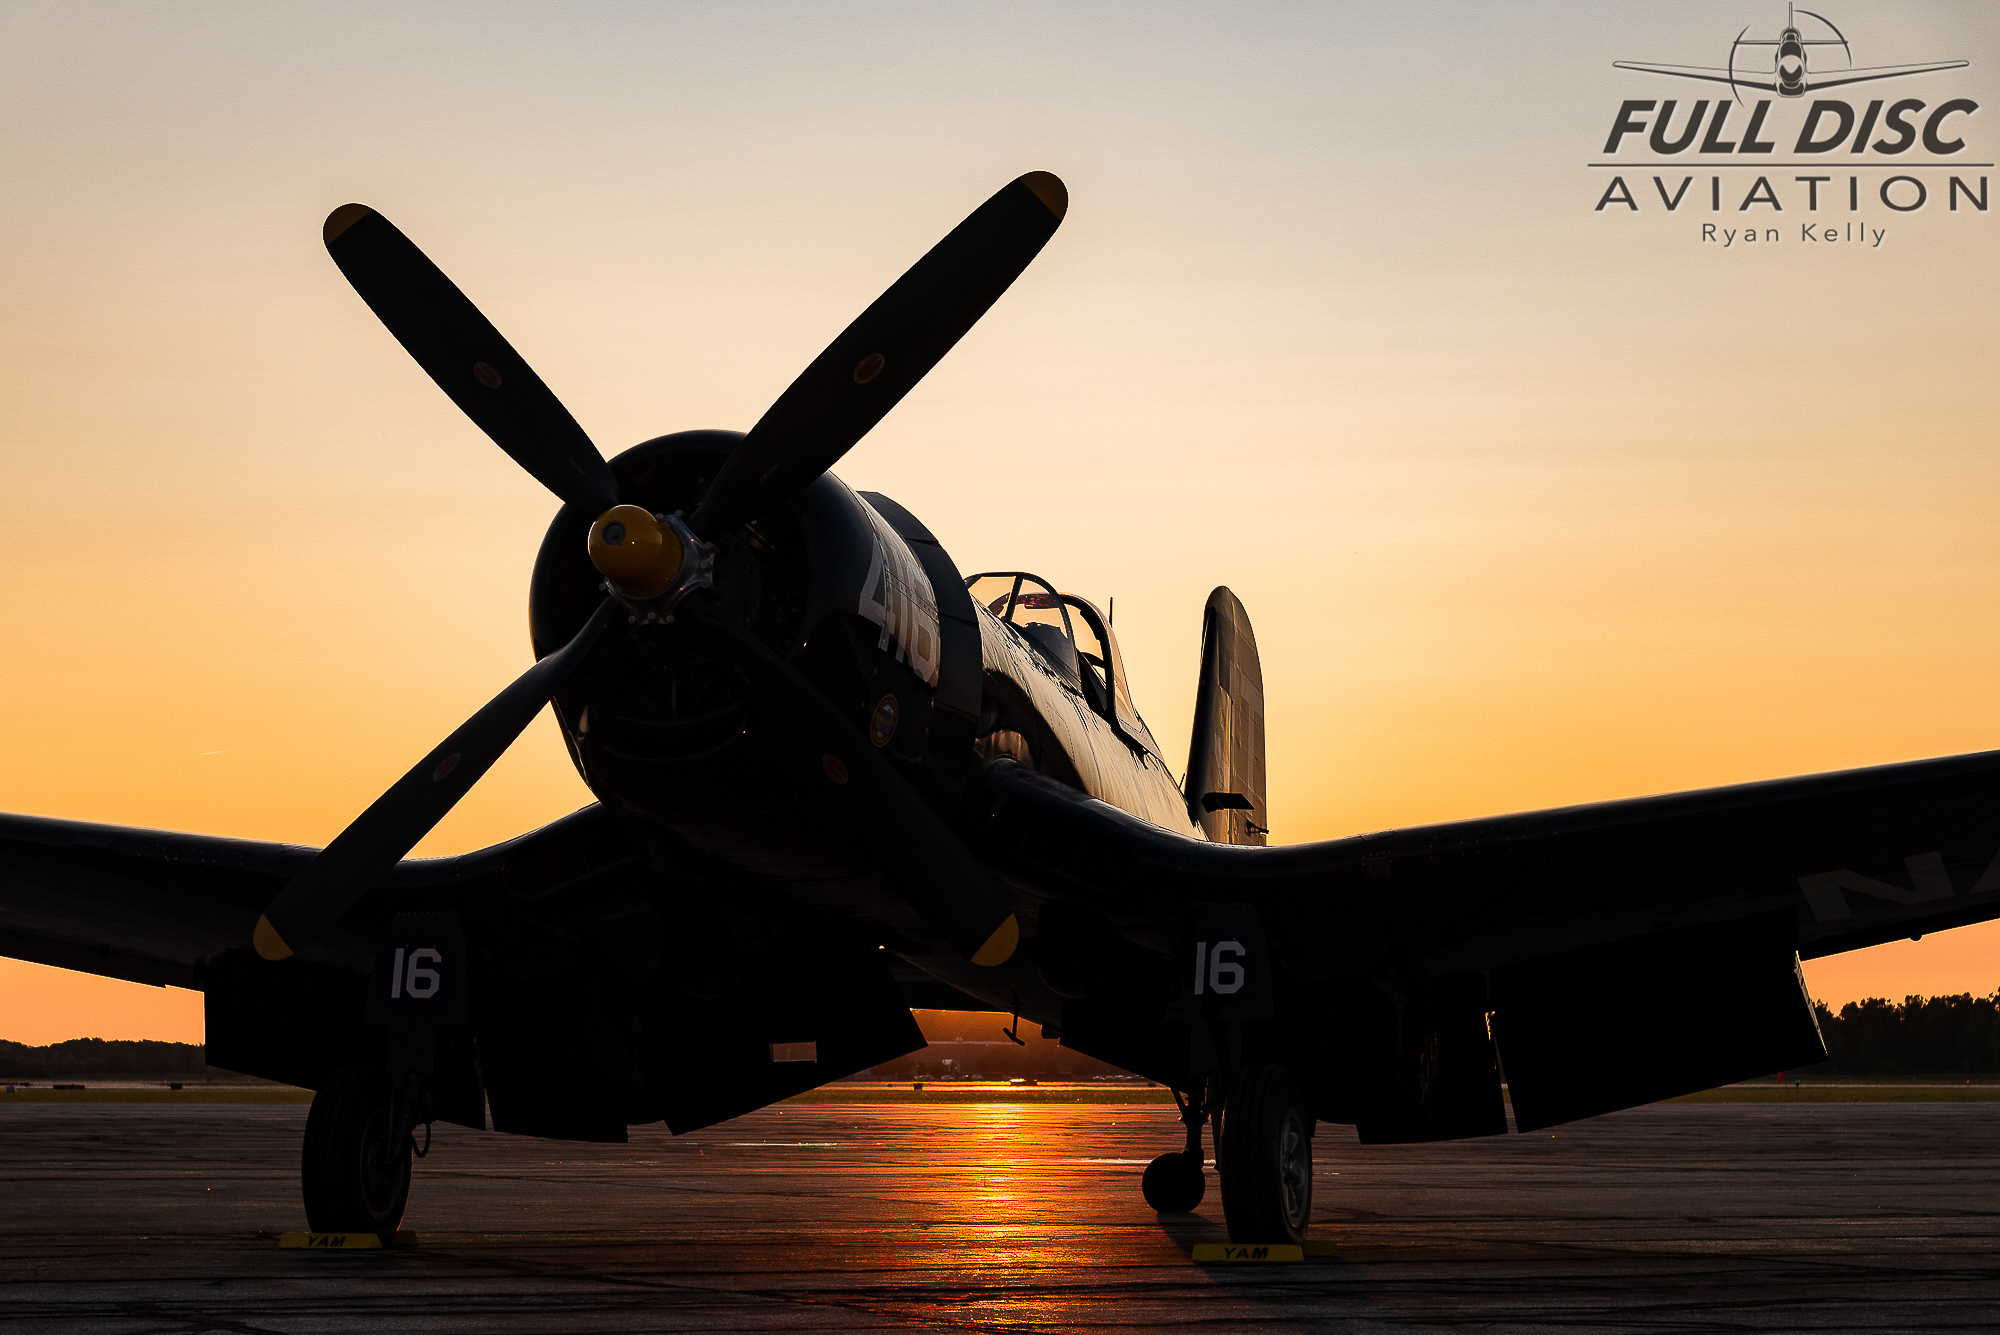 ClassOf45_FullDiscAviation_RyanKelly_August 01, 2019_13.jpg